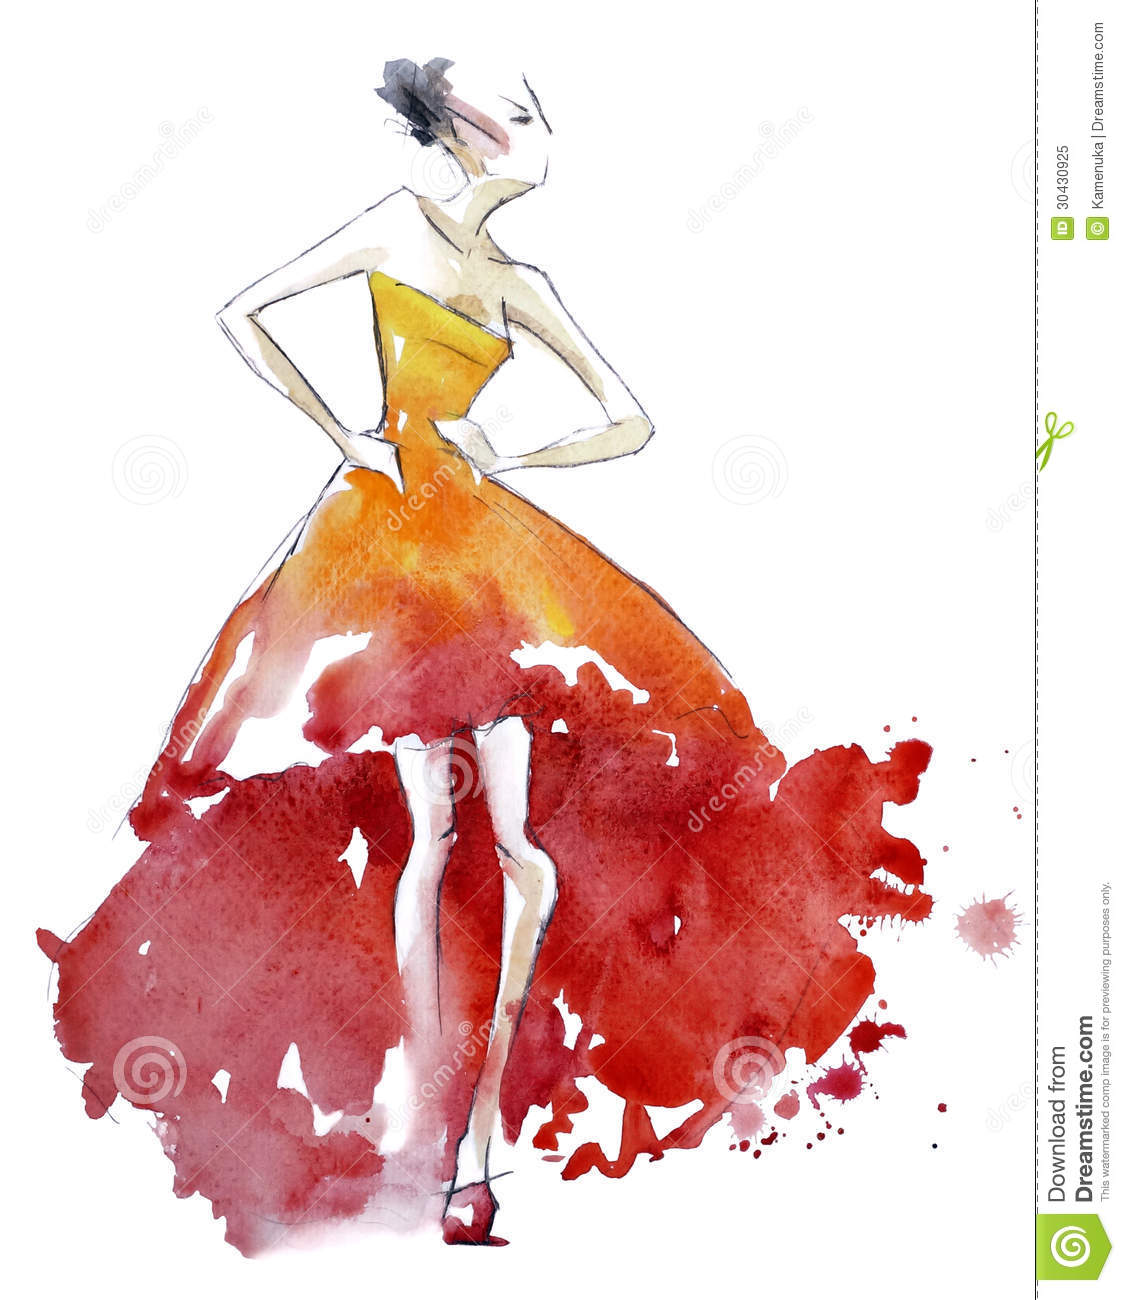 Red dress fashion illustration watercolor painting stock for Watercolor paintings of hands